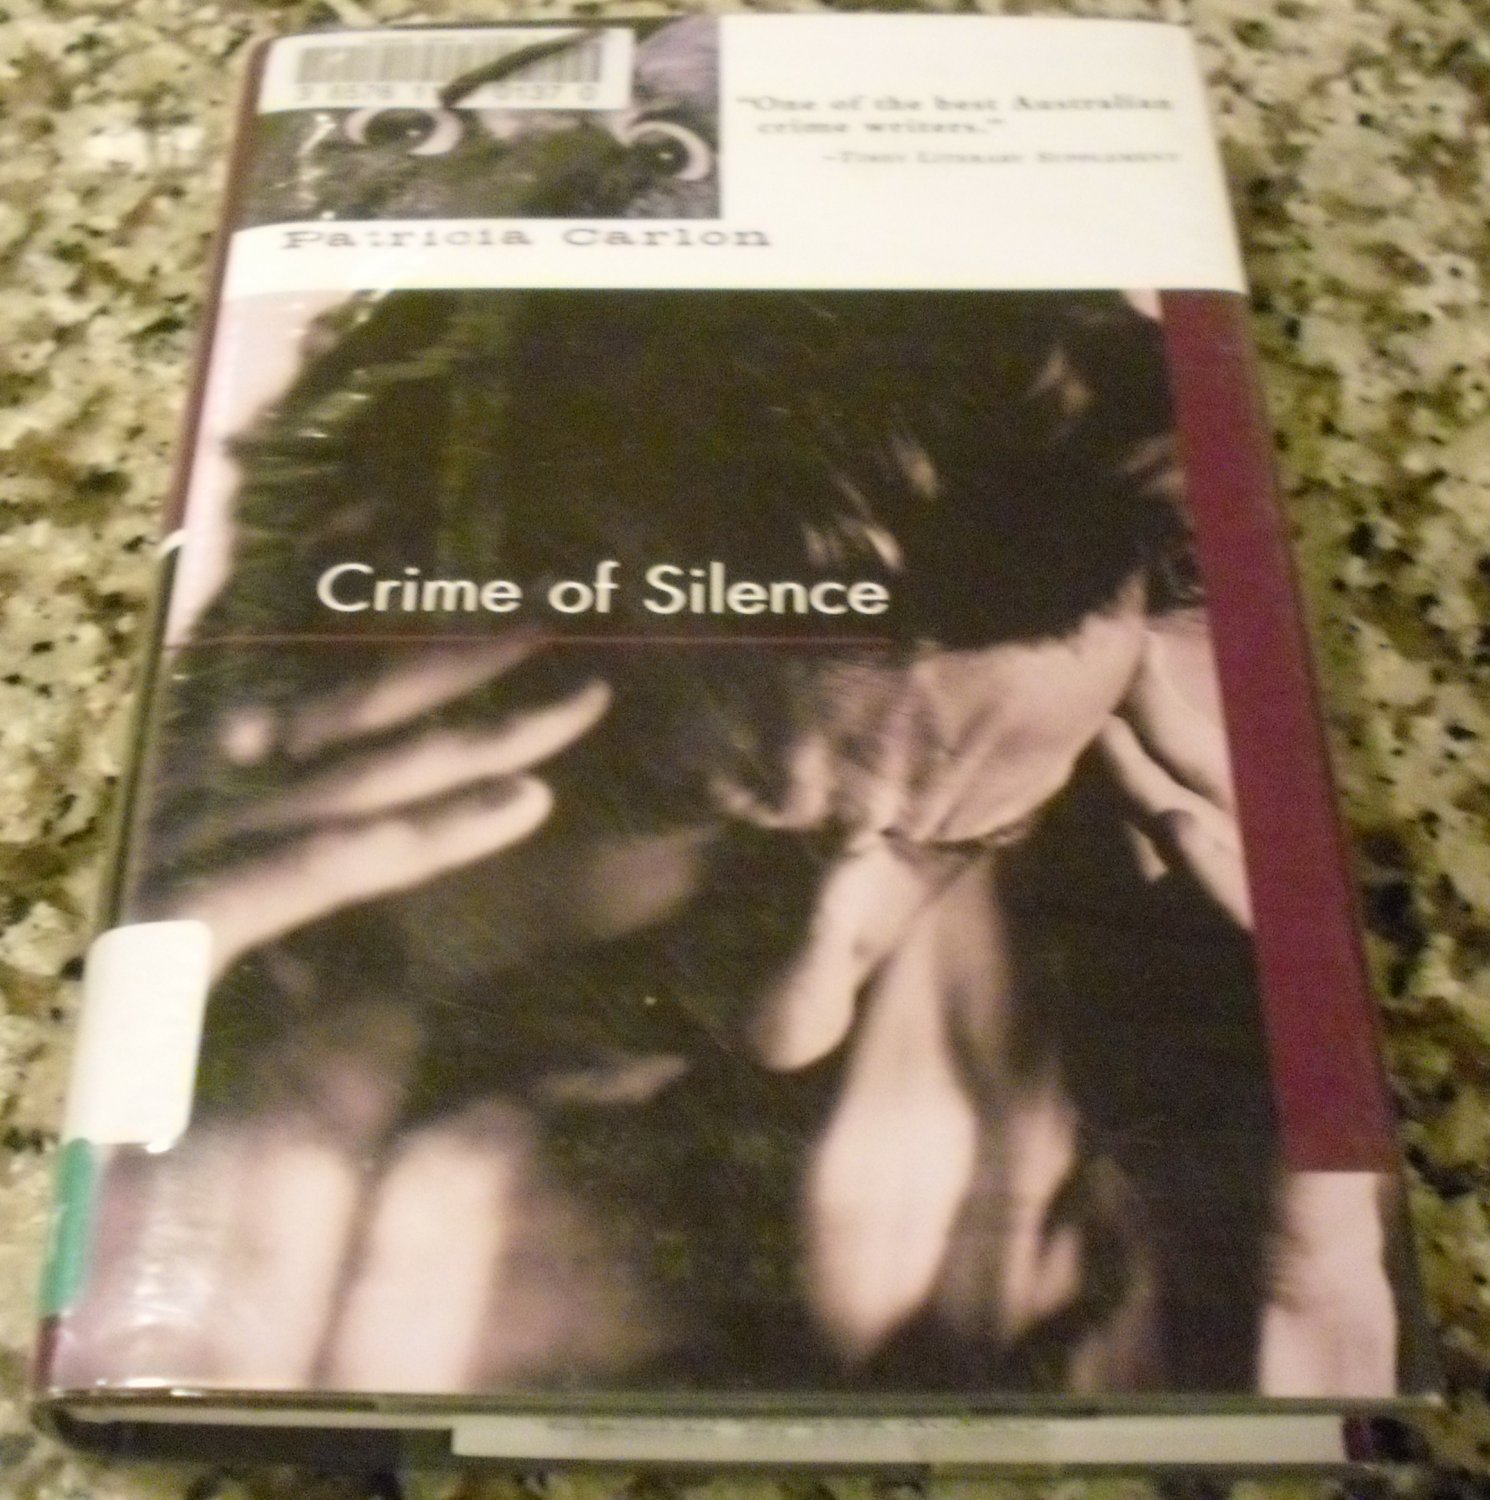 Crime of Silence Hardcover by Patricia Carlon  (Author)